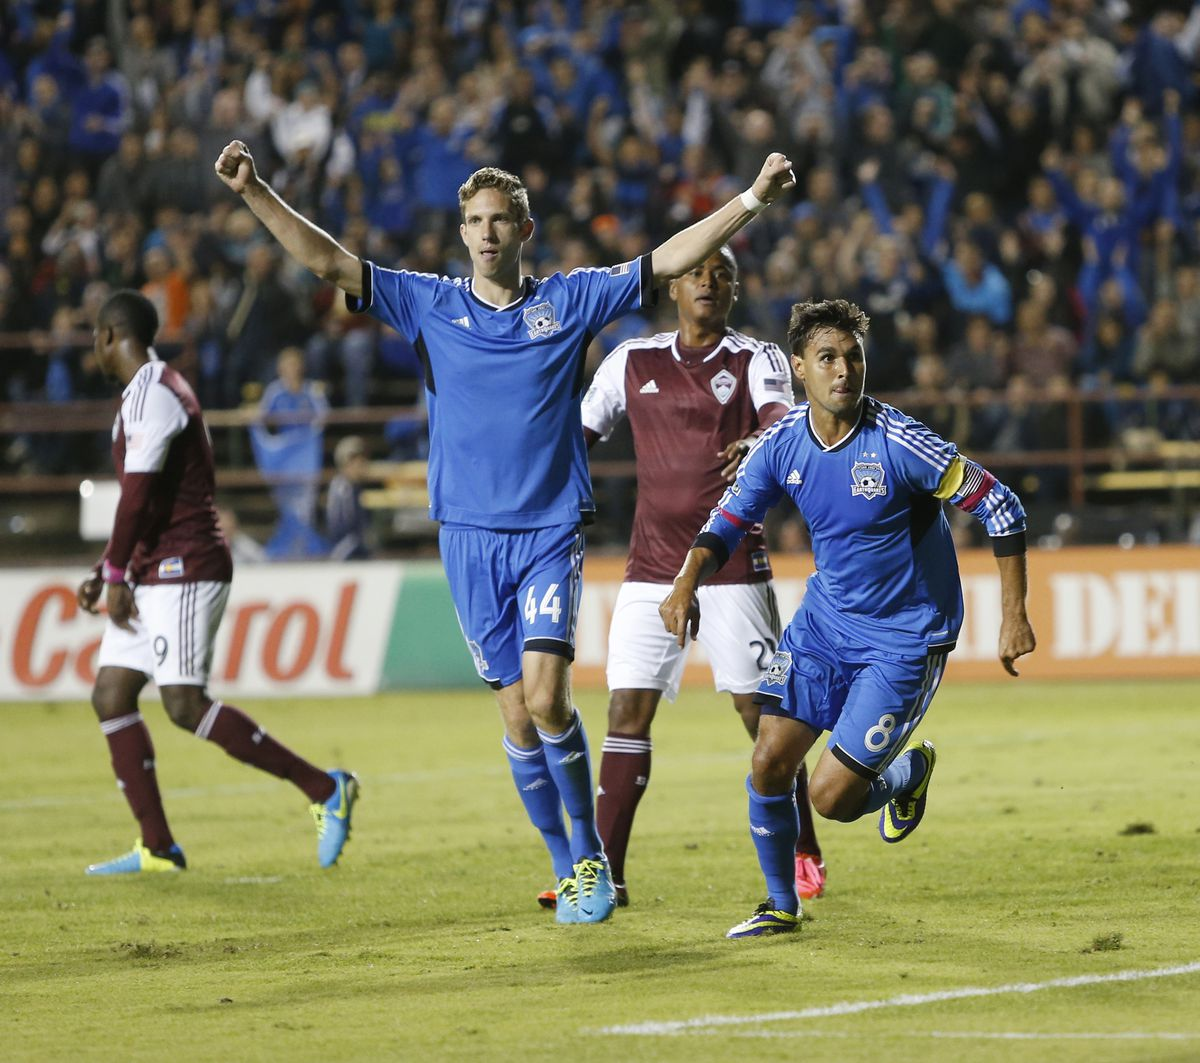 San Jose Earthquakes Clarence Goodson (44) celebrates as Chris Wondolowski (8) runs to sidelines after scoring 1-0 goal against the Colorado Rapids in the second half at Buck Shaw Stadium in Santa Clara, Calif., on Wednesday, Oct. 9, 2013. (Josie Lepe